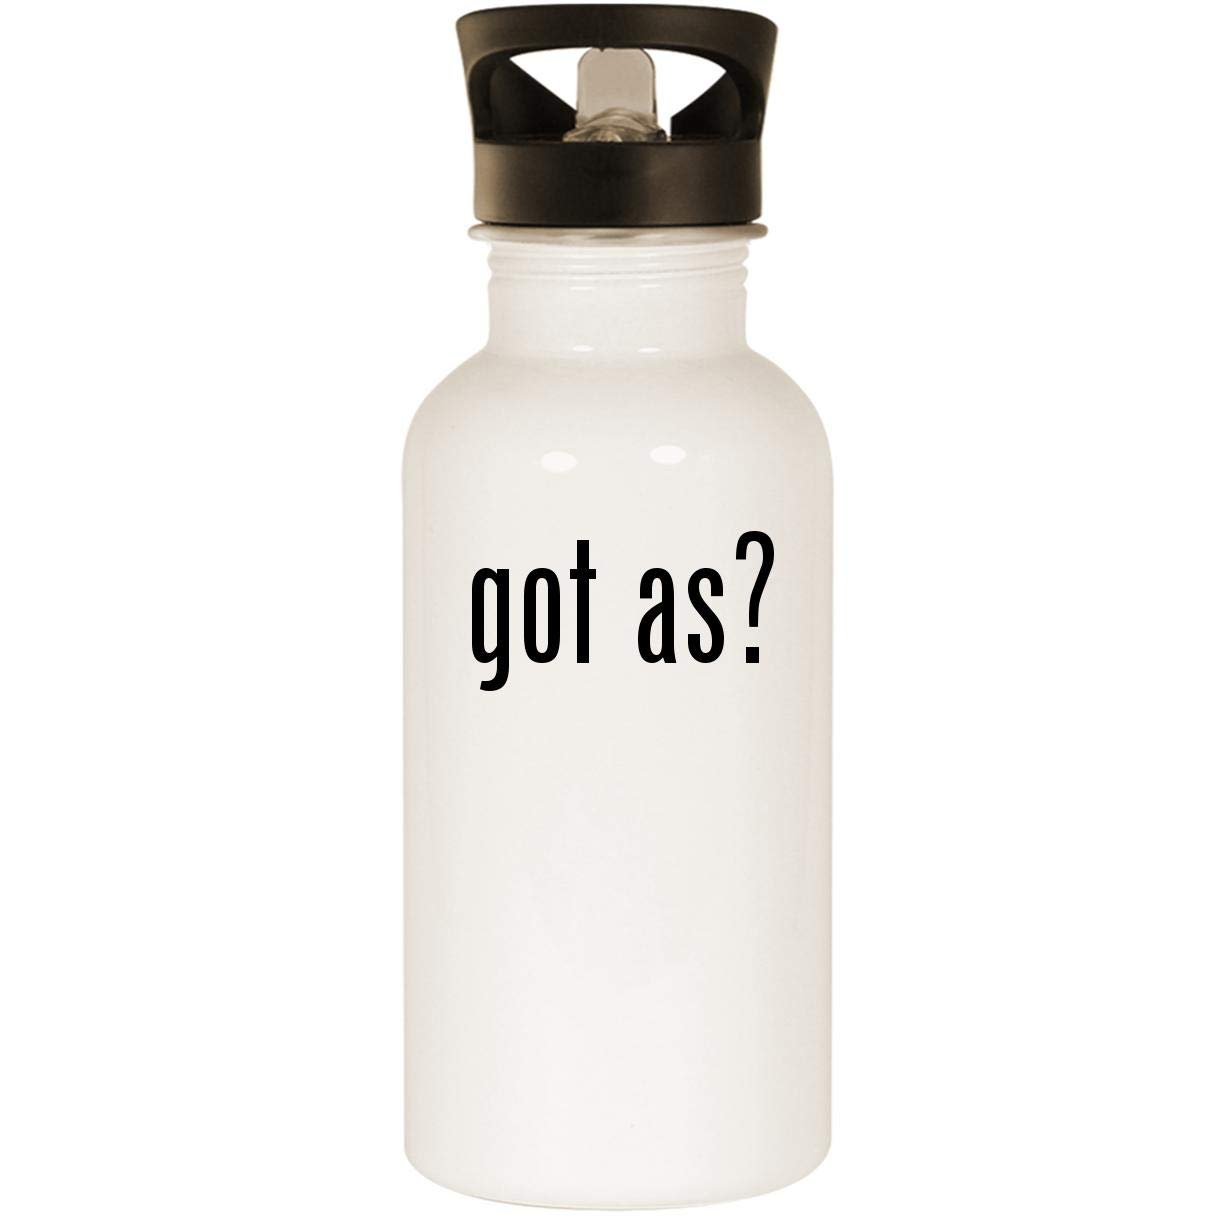 got as? - Stainless Steel 20oz Road Ready Water Bottle, White